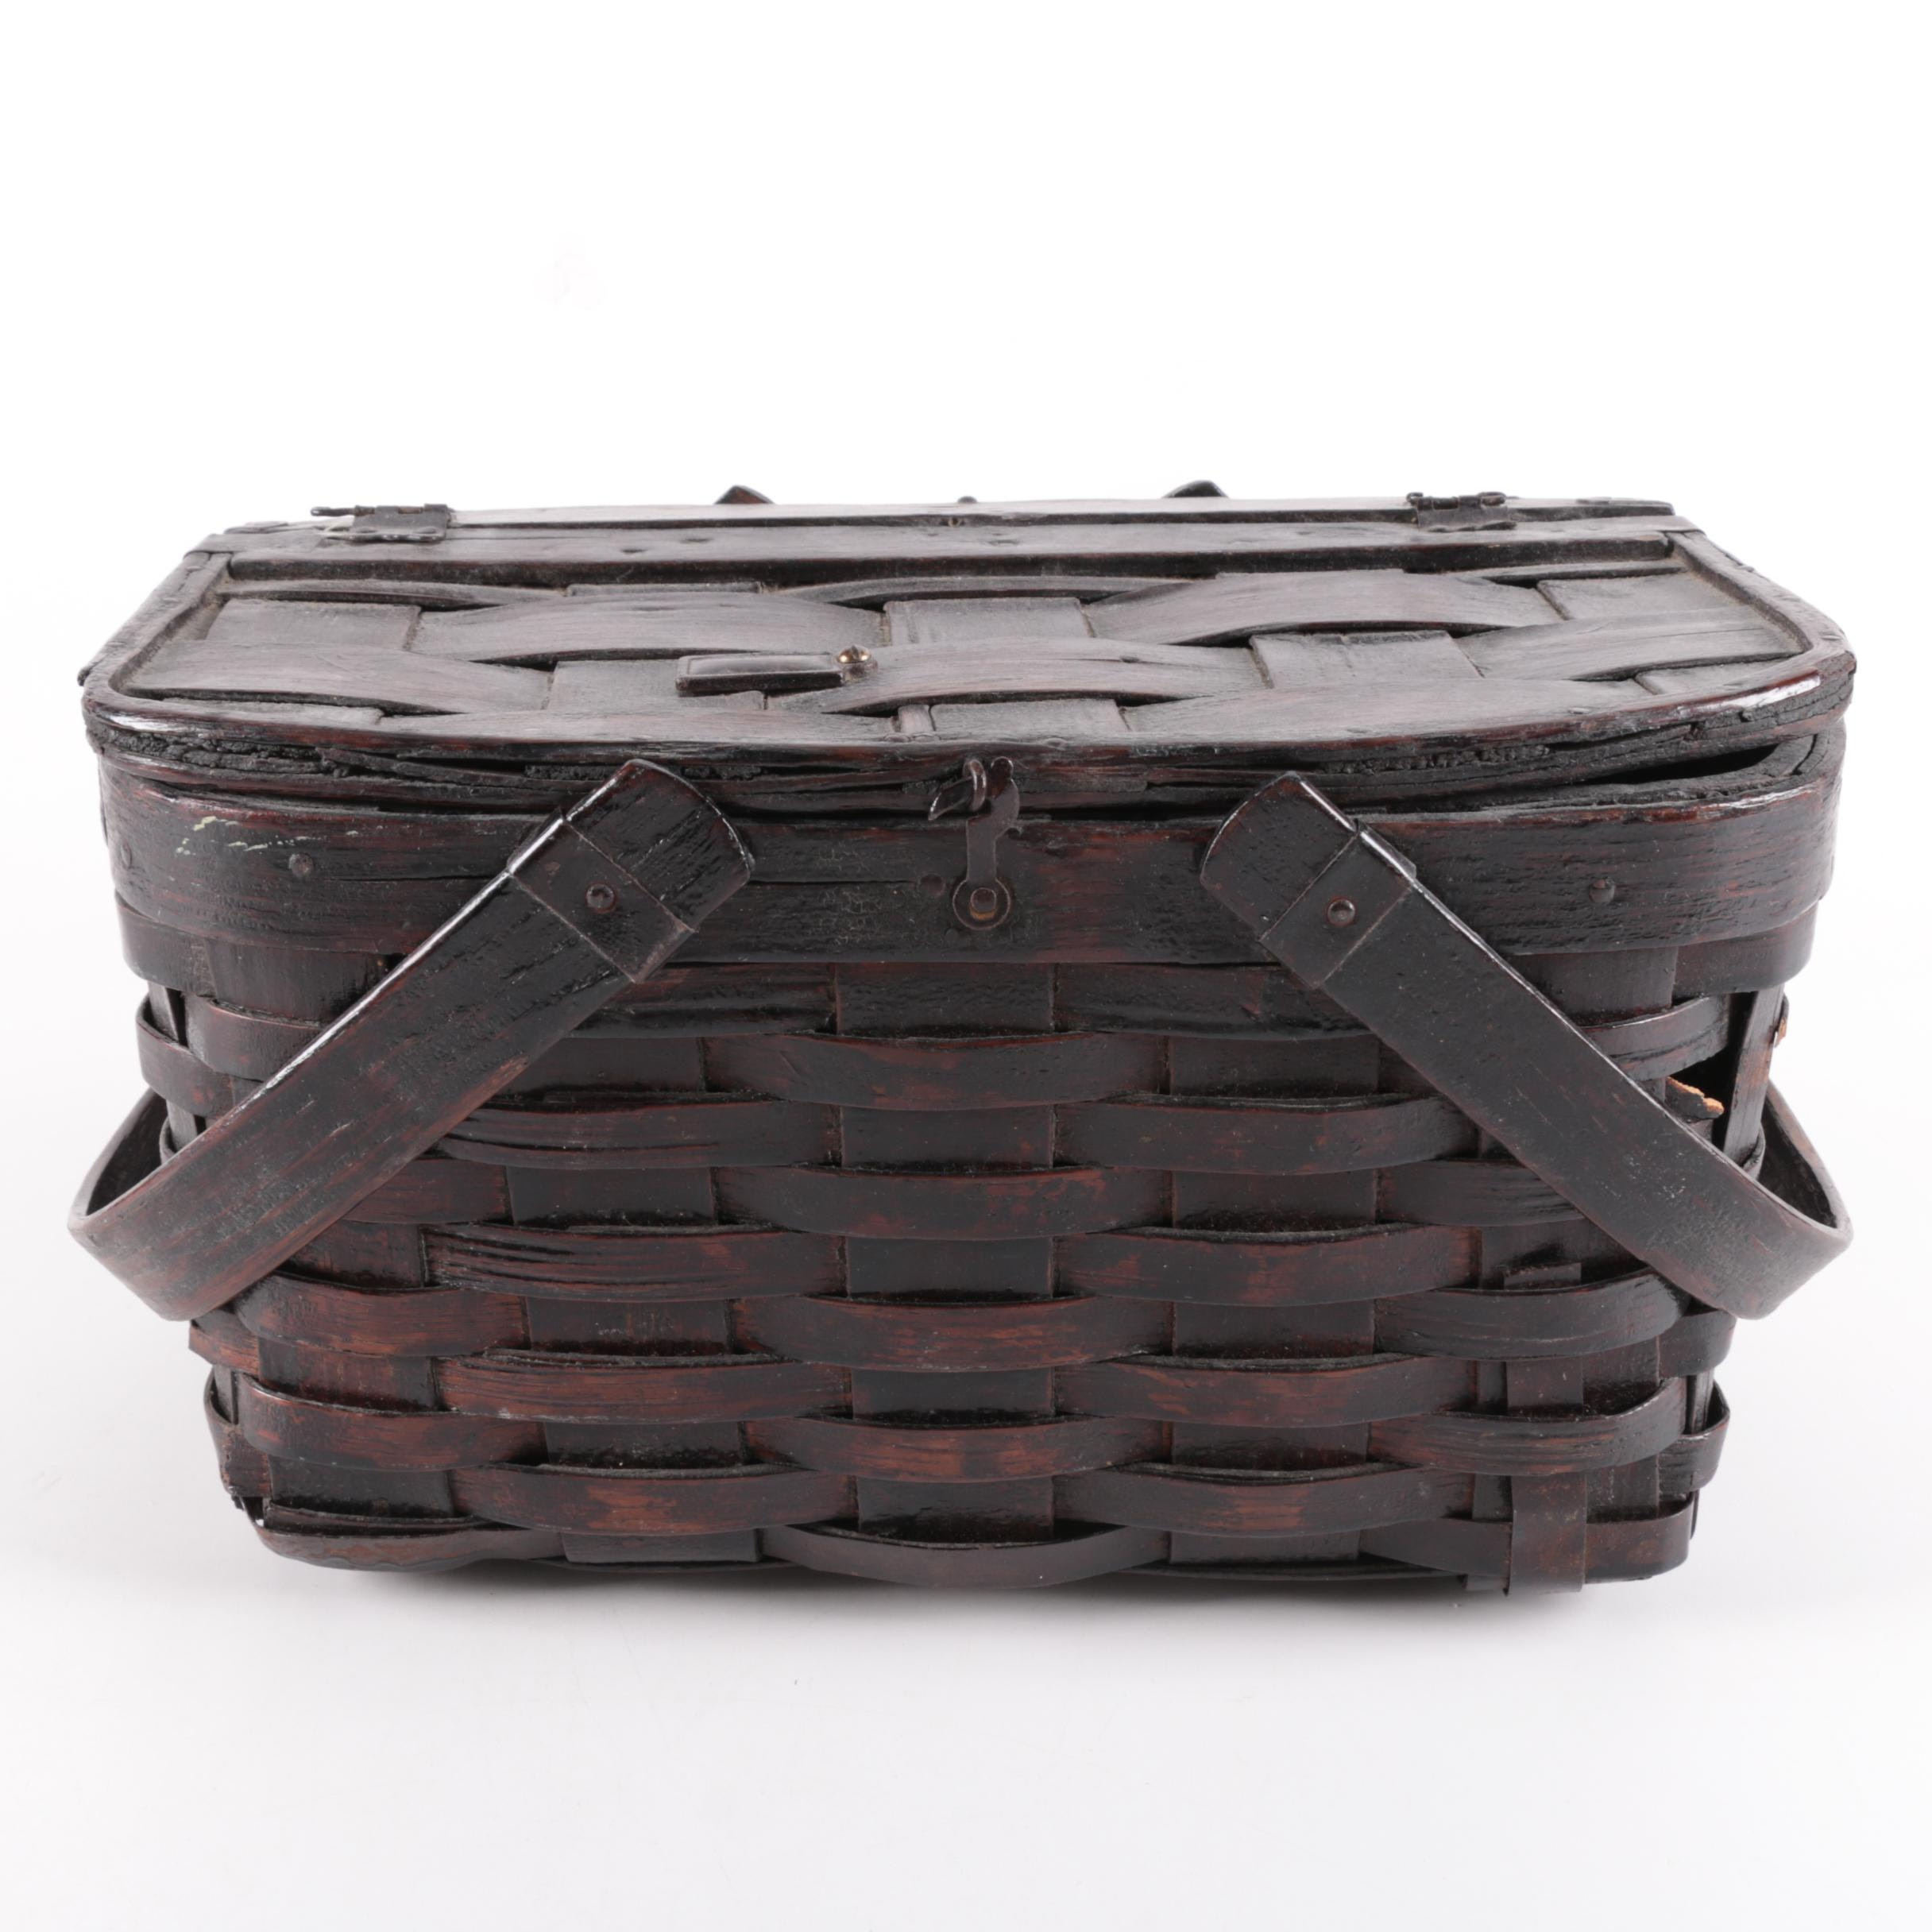 Handled Woven Basket with Hinged Lid